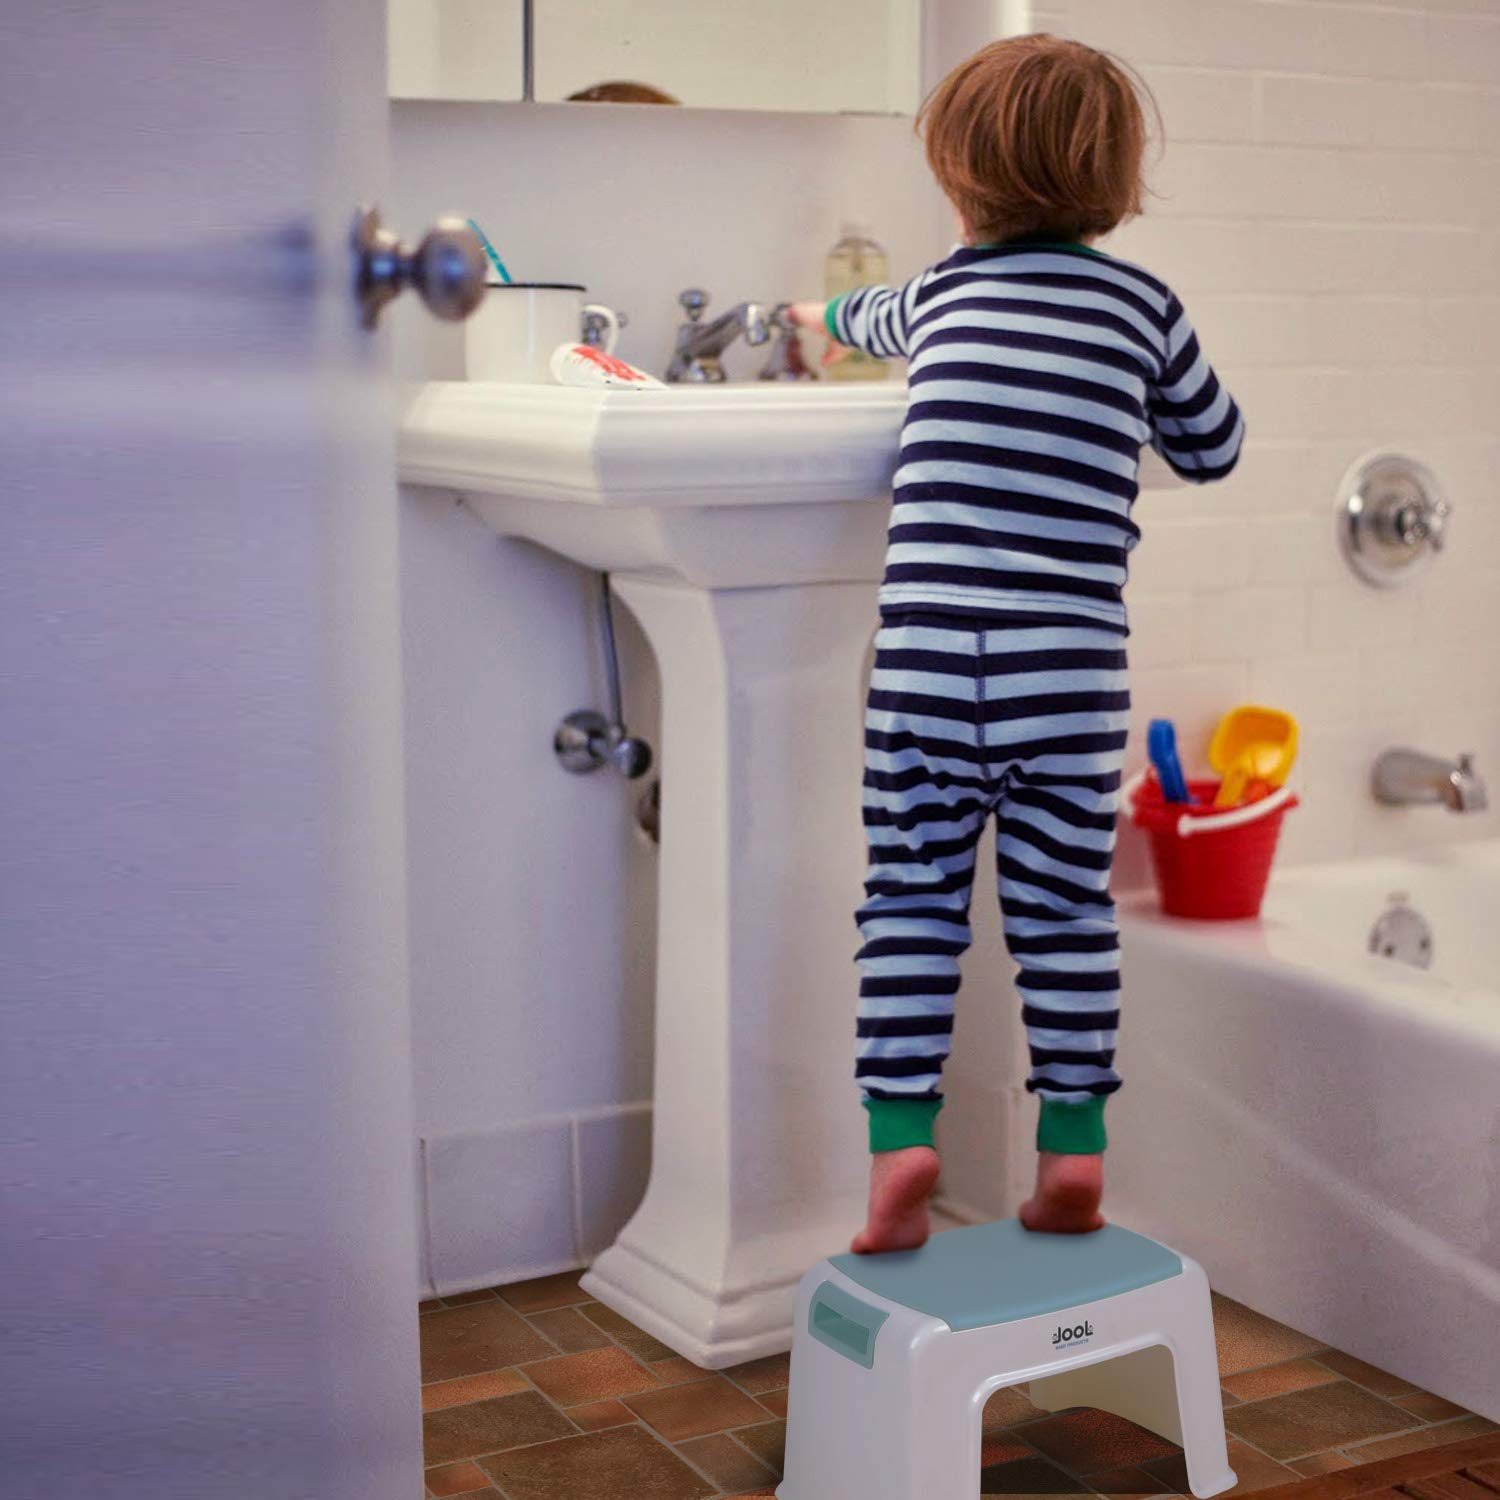 Jool Baby Toilet Training Step Stool with Anti-Slip Grips for Kids Child Step Stool for Boys /& Girls